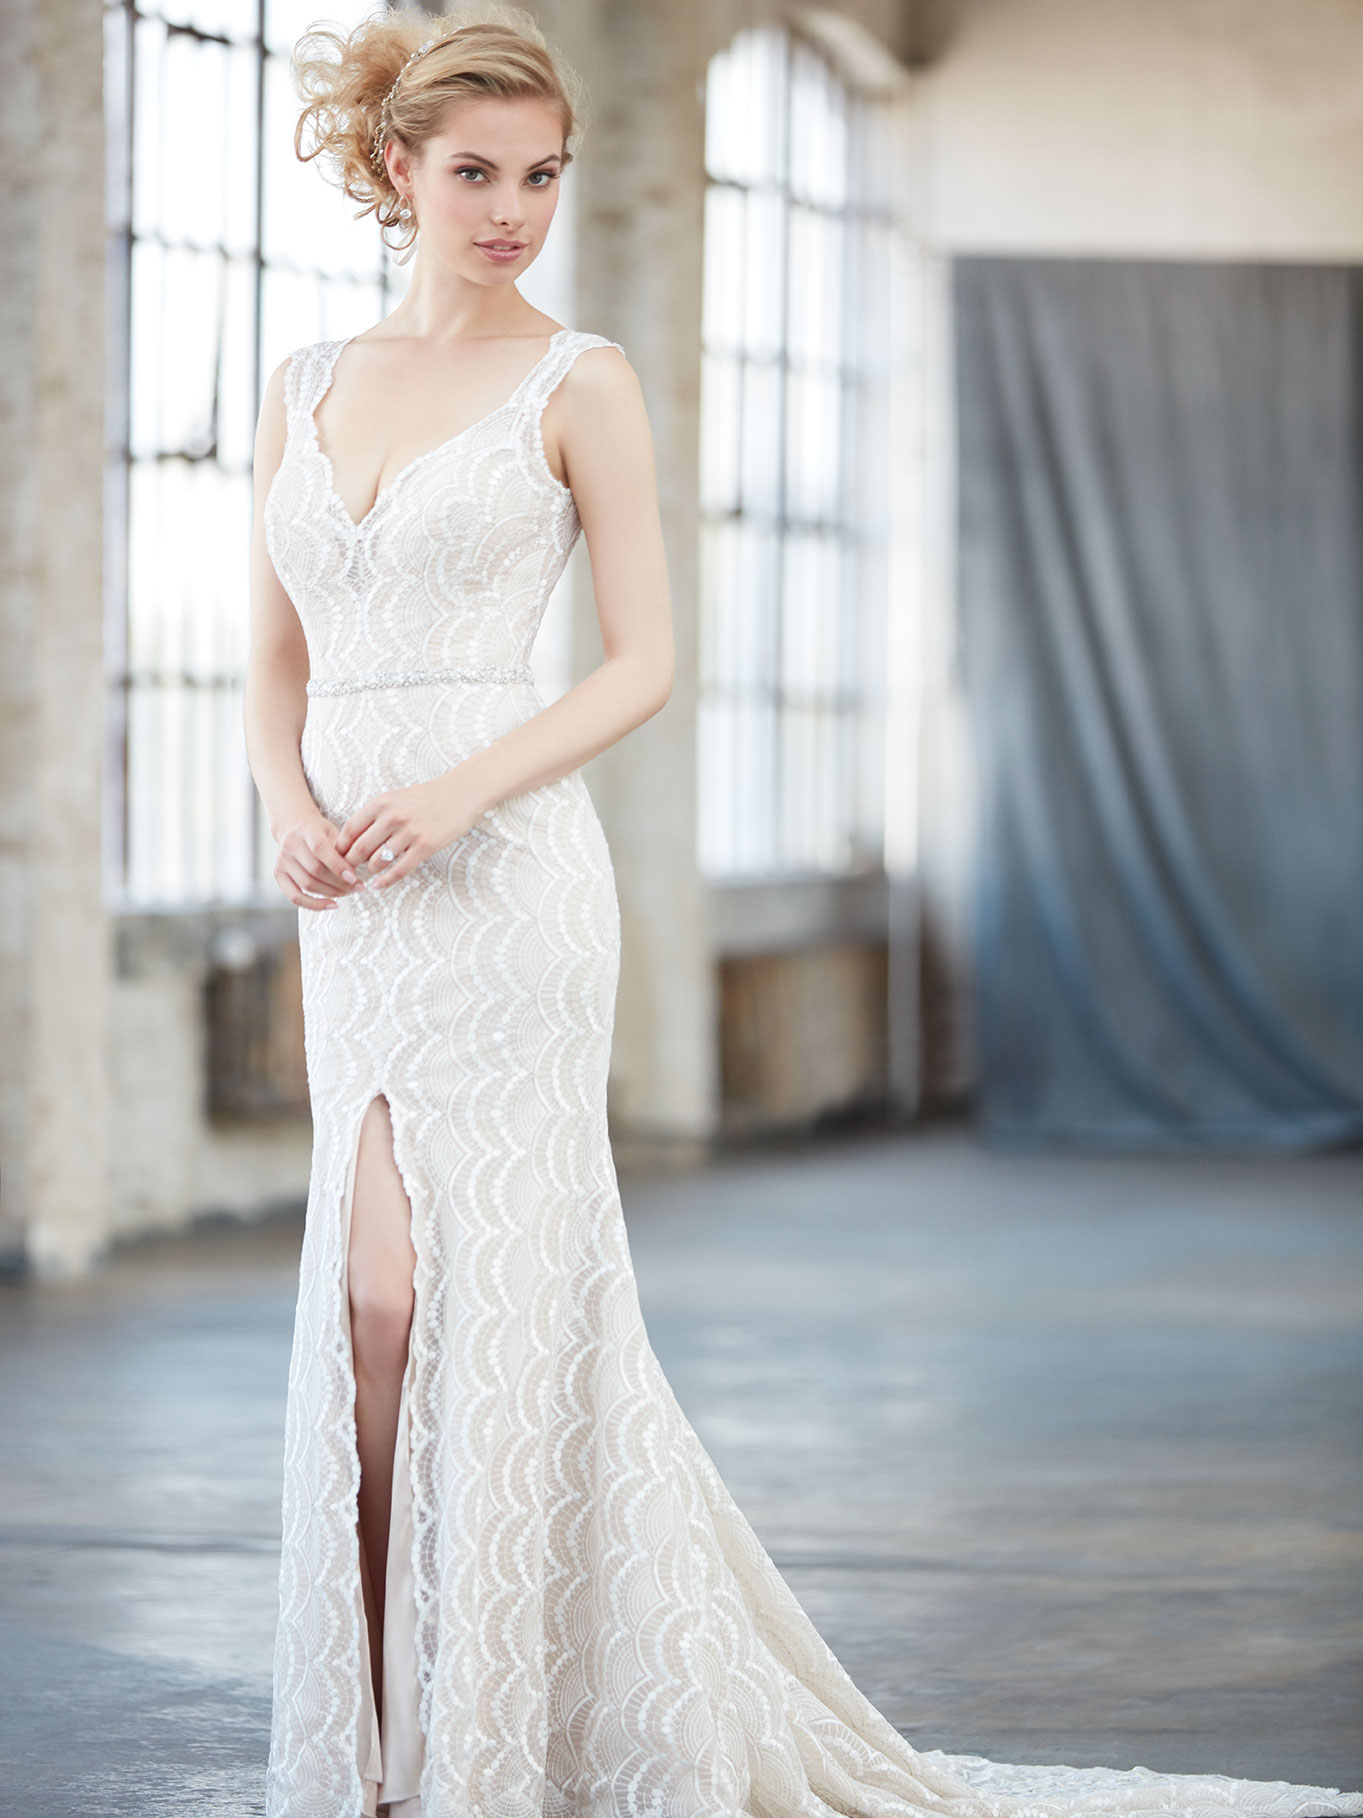 Lace wedding dress featuring front split, Madison James 2017 Trunk Show coming to Raffaele Ciuca, Melbourne